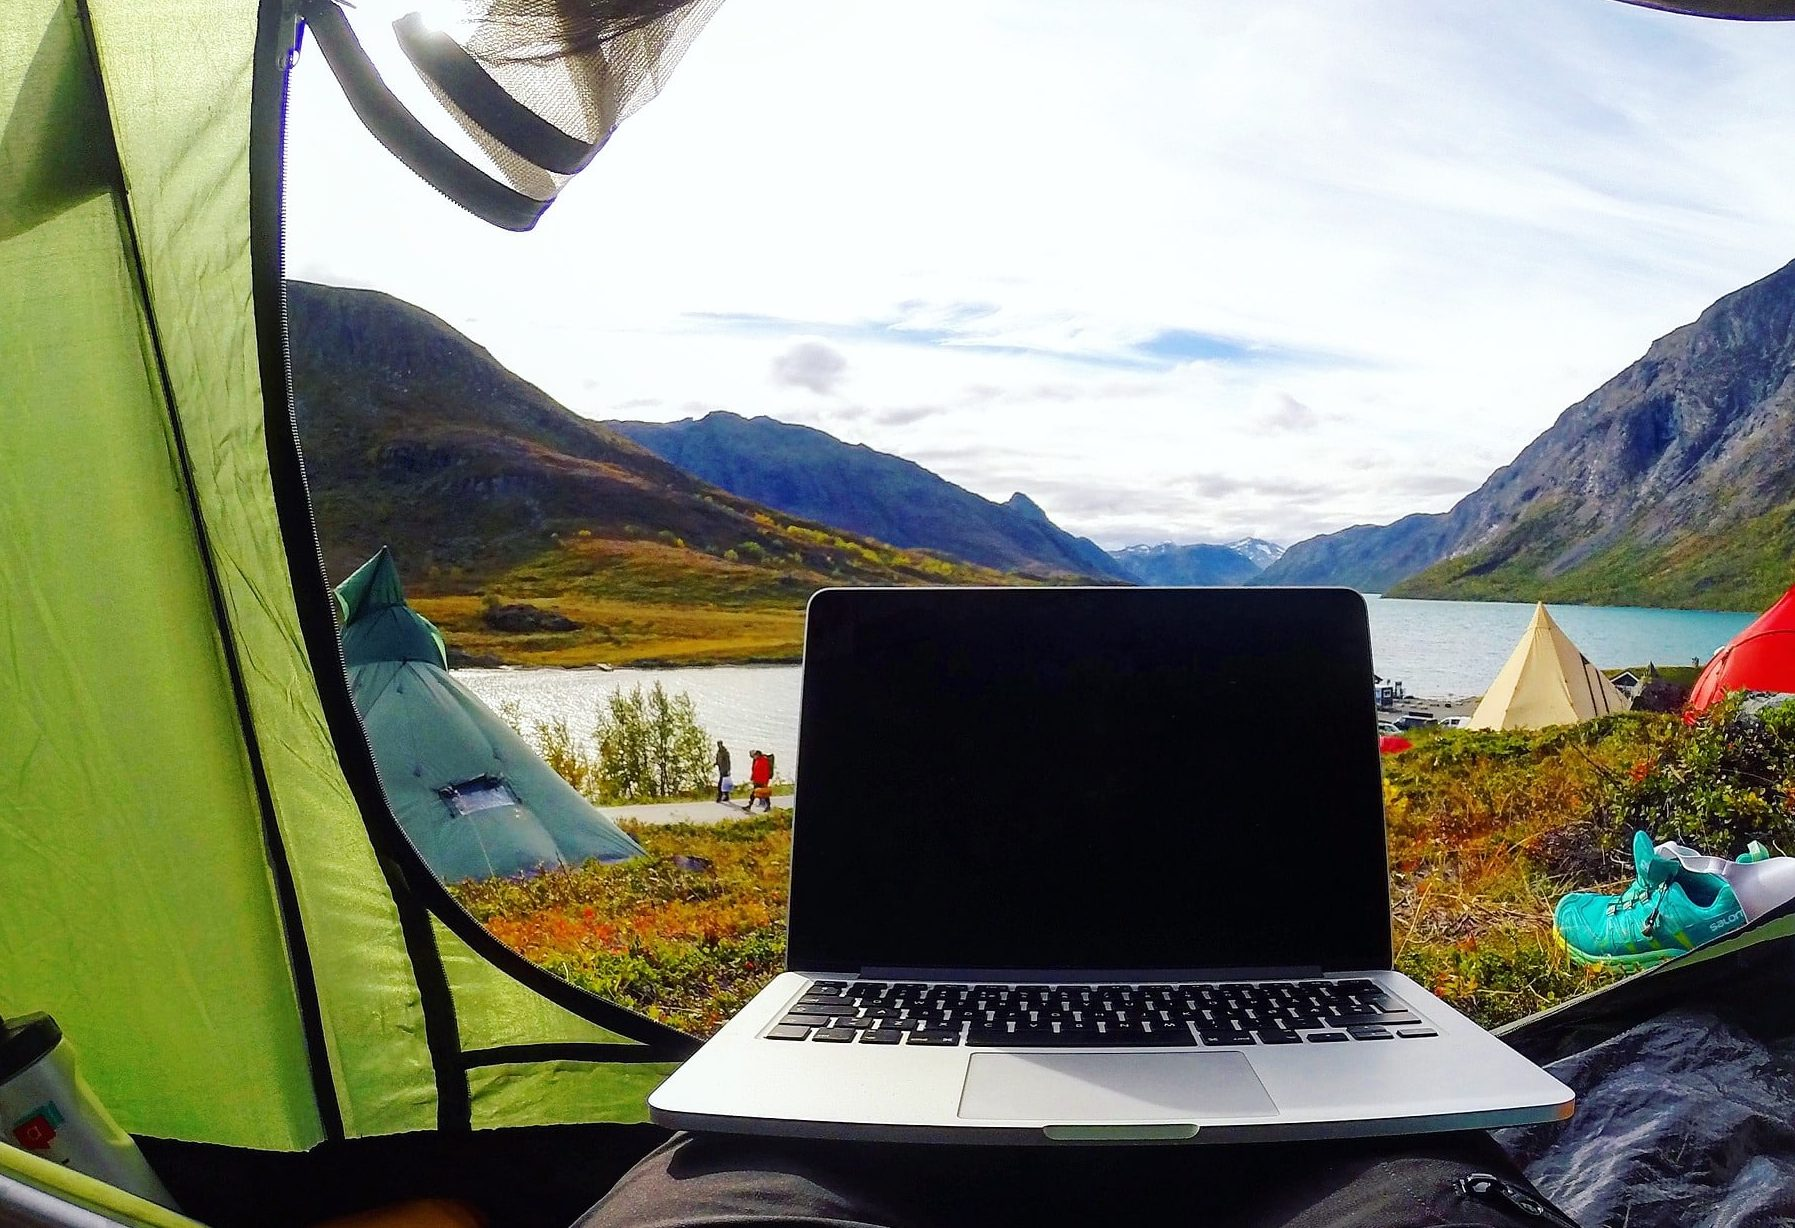 How to Get WIFI while Camping